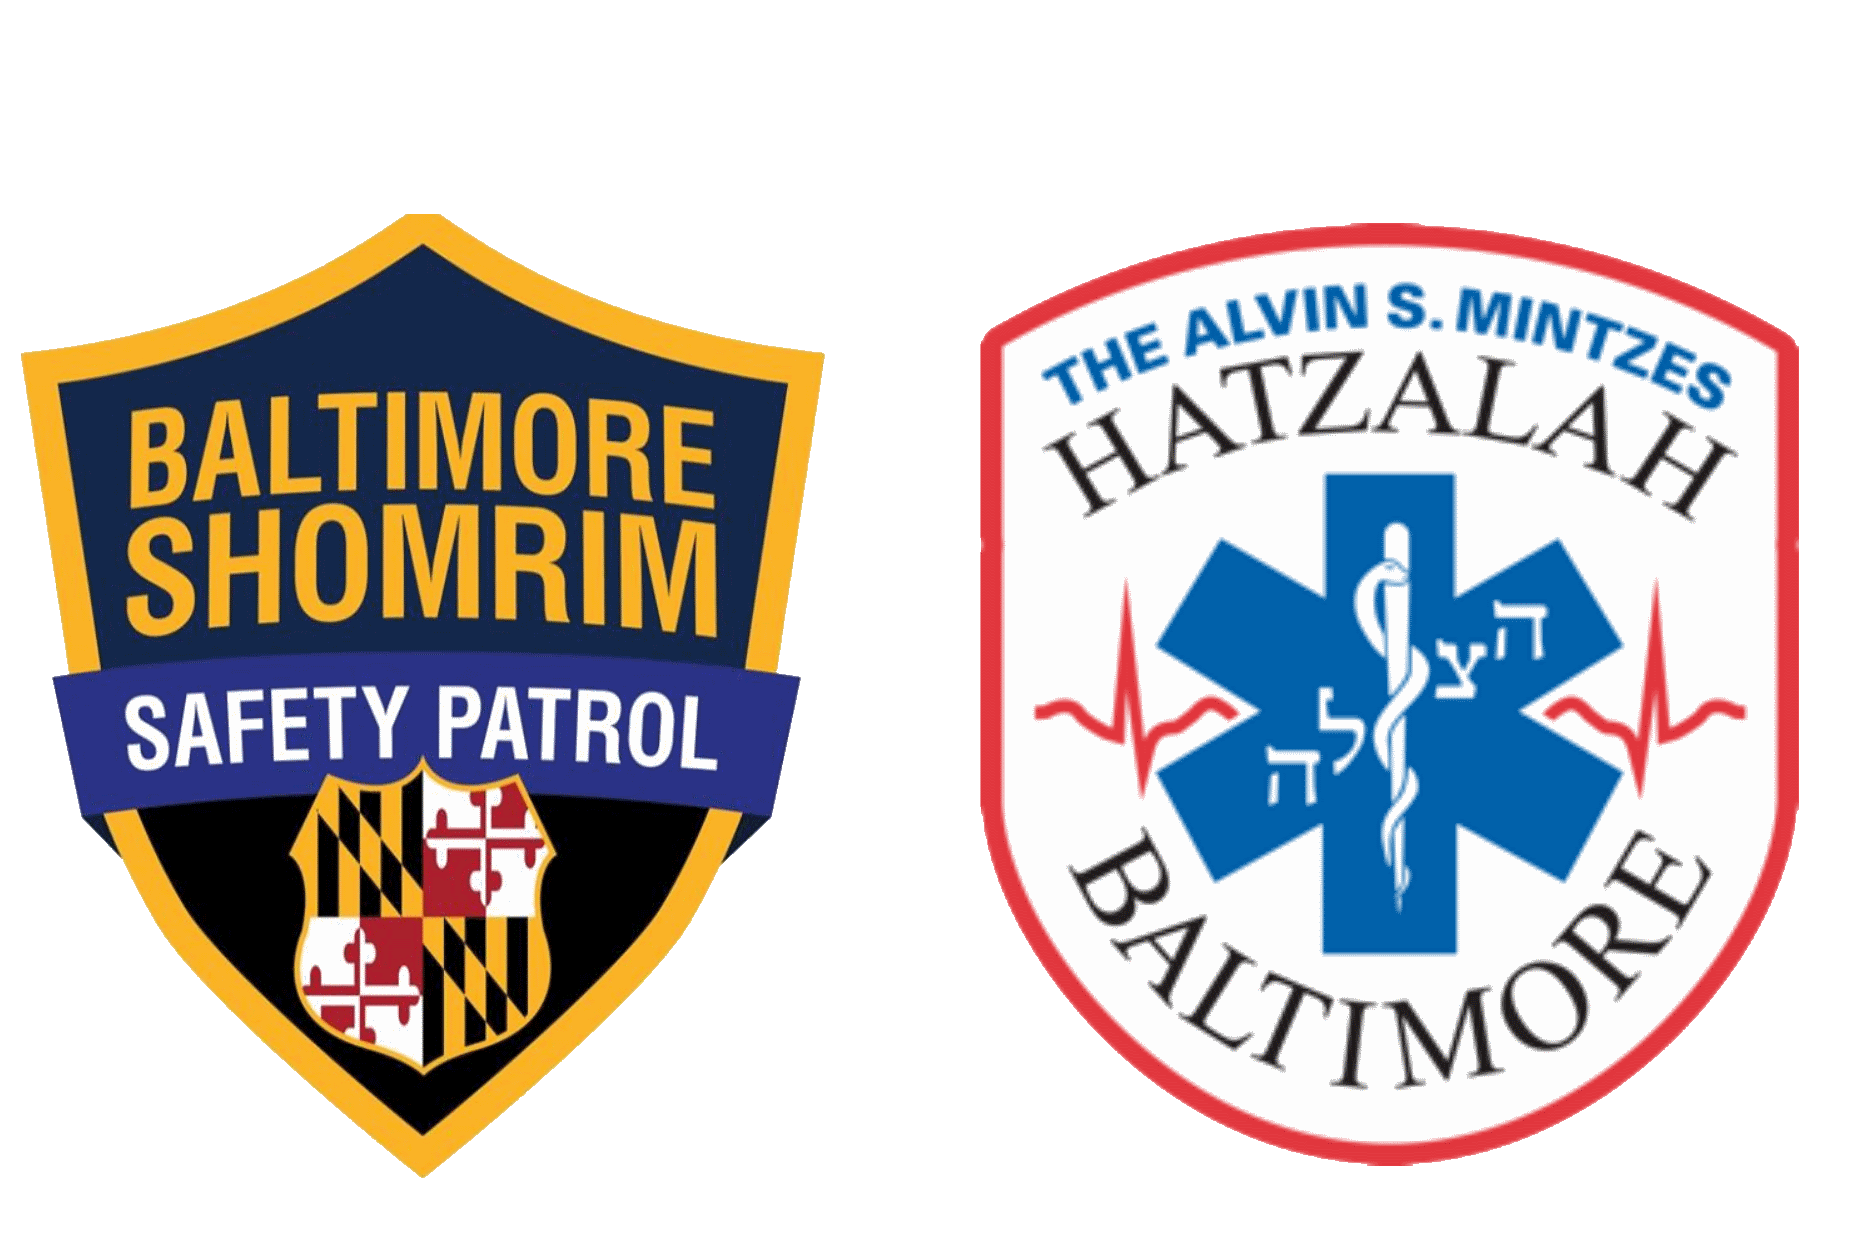 Shomrim and Hatzalah Logos